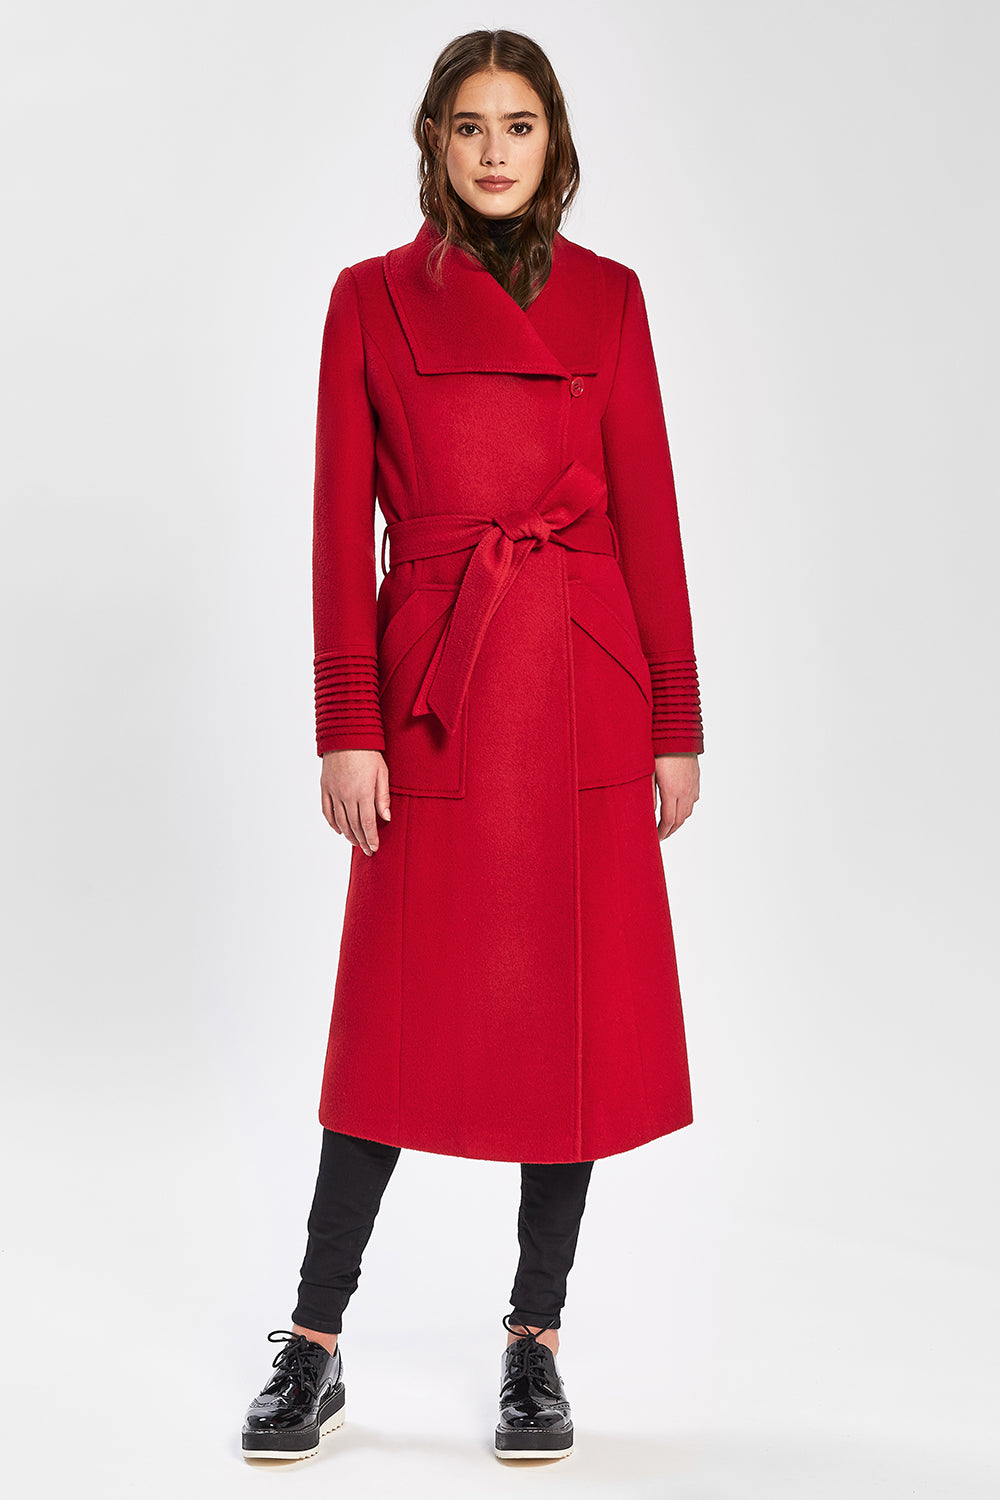 Sentaler Long Wide Collar Wrap Coat featured in Baby Alpaca and available in Scarlet Red. Seen from front.